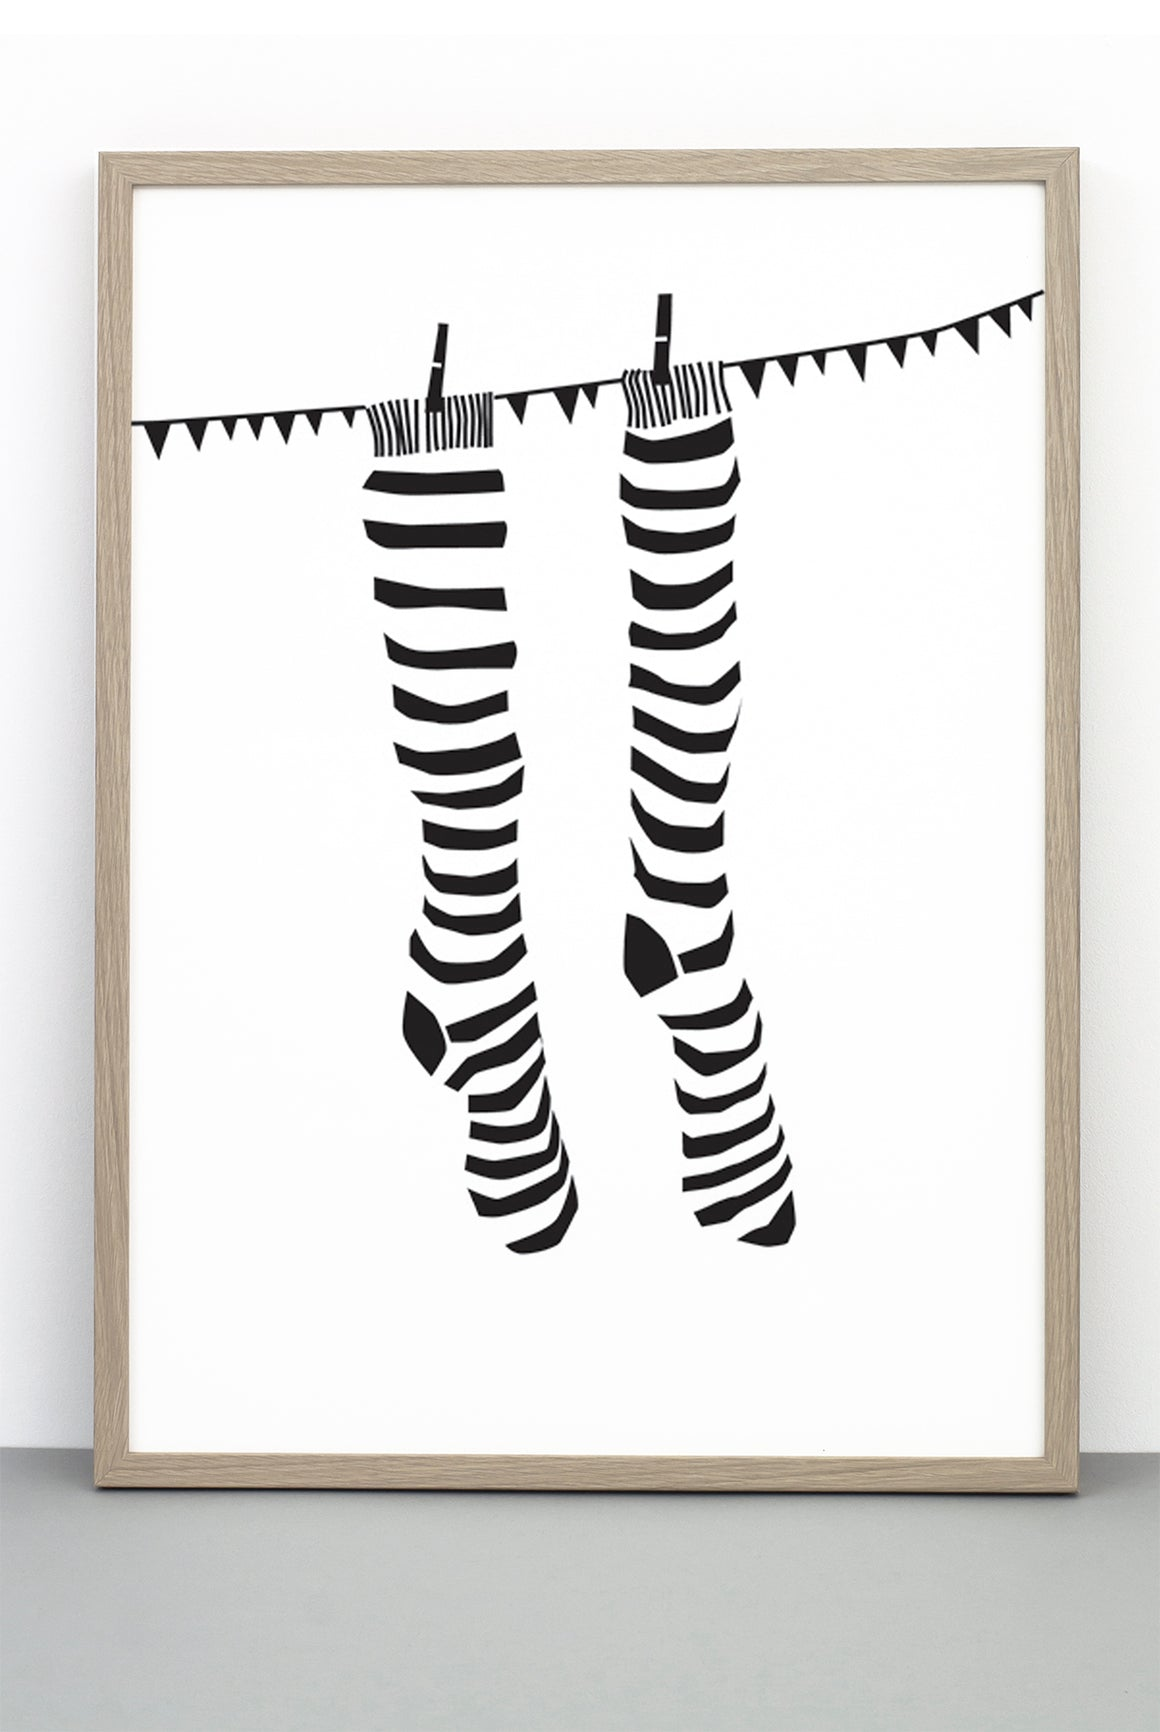 KNOCK YOUR SOCKS OFF PRINT, AN ILLUSTRATIVE BLACK AND WHITE MONOCHROME POSTER